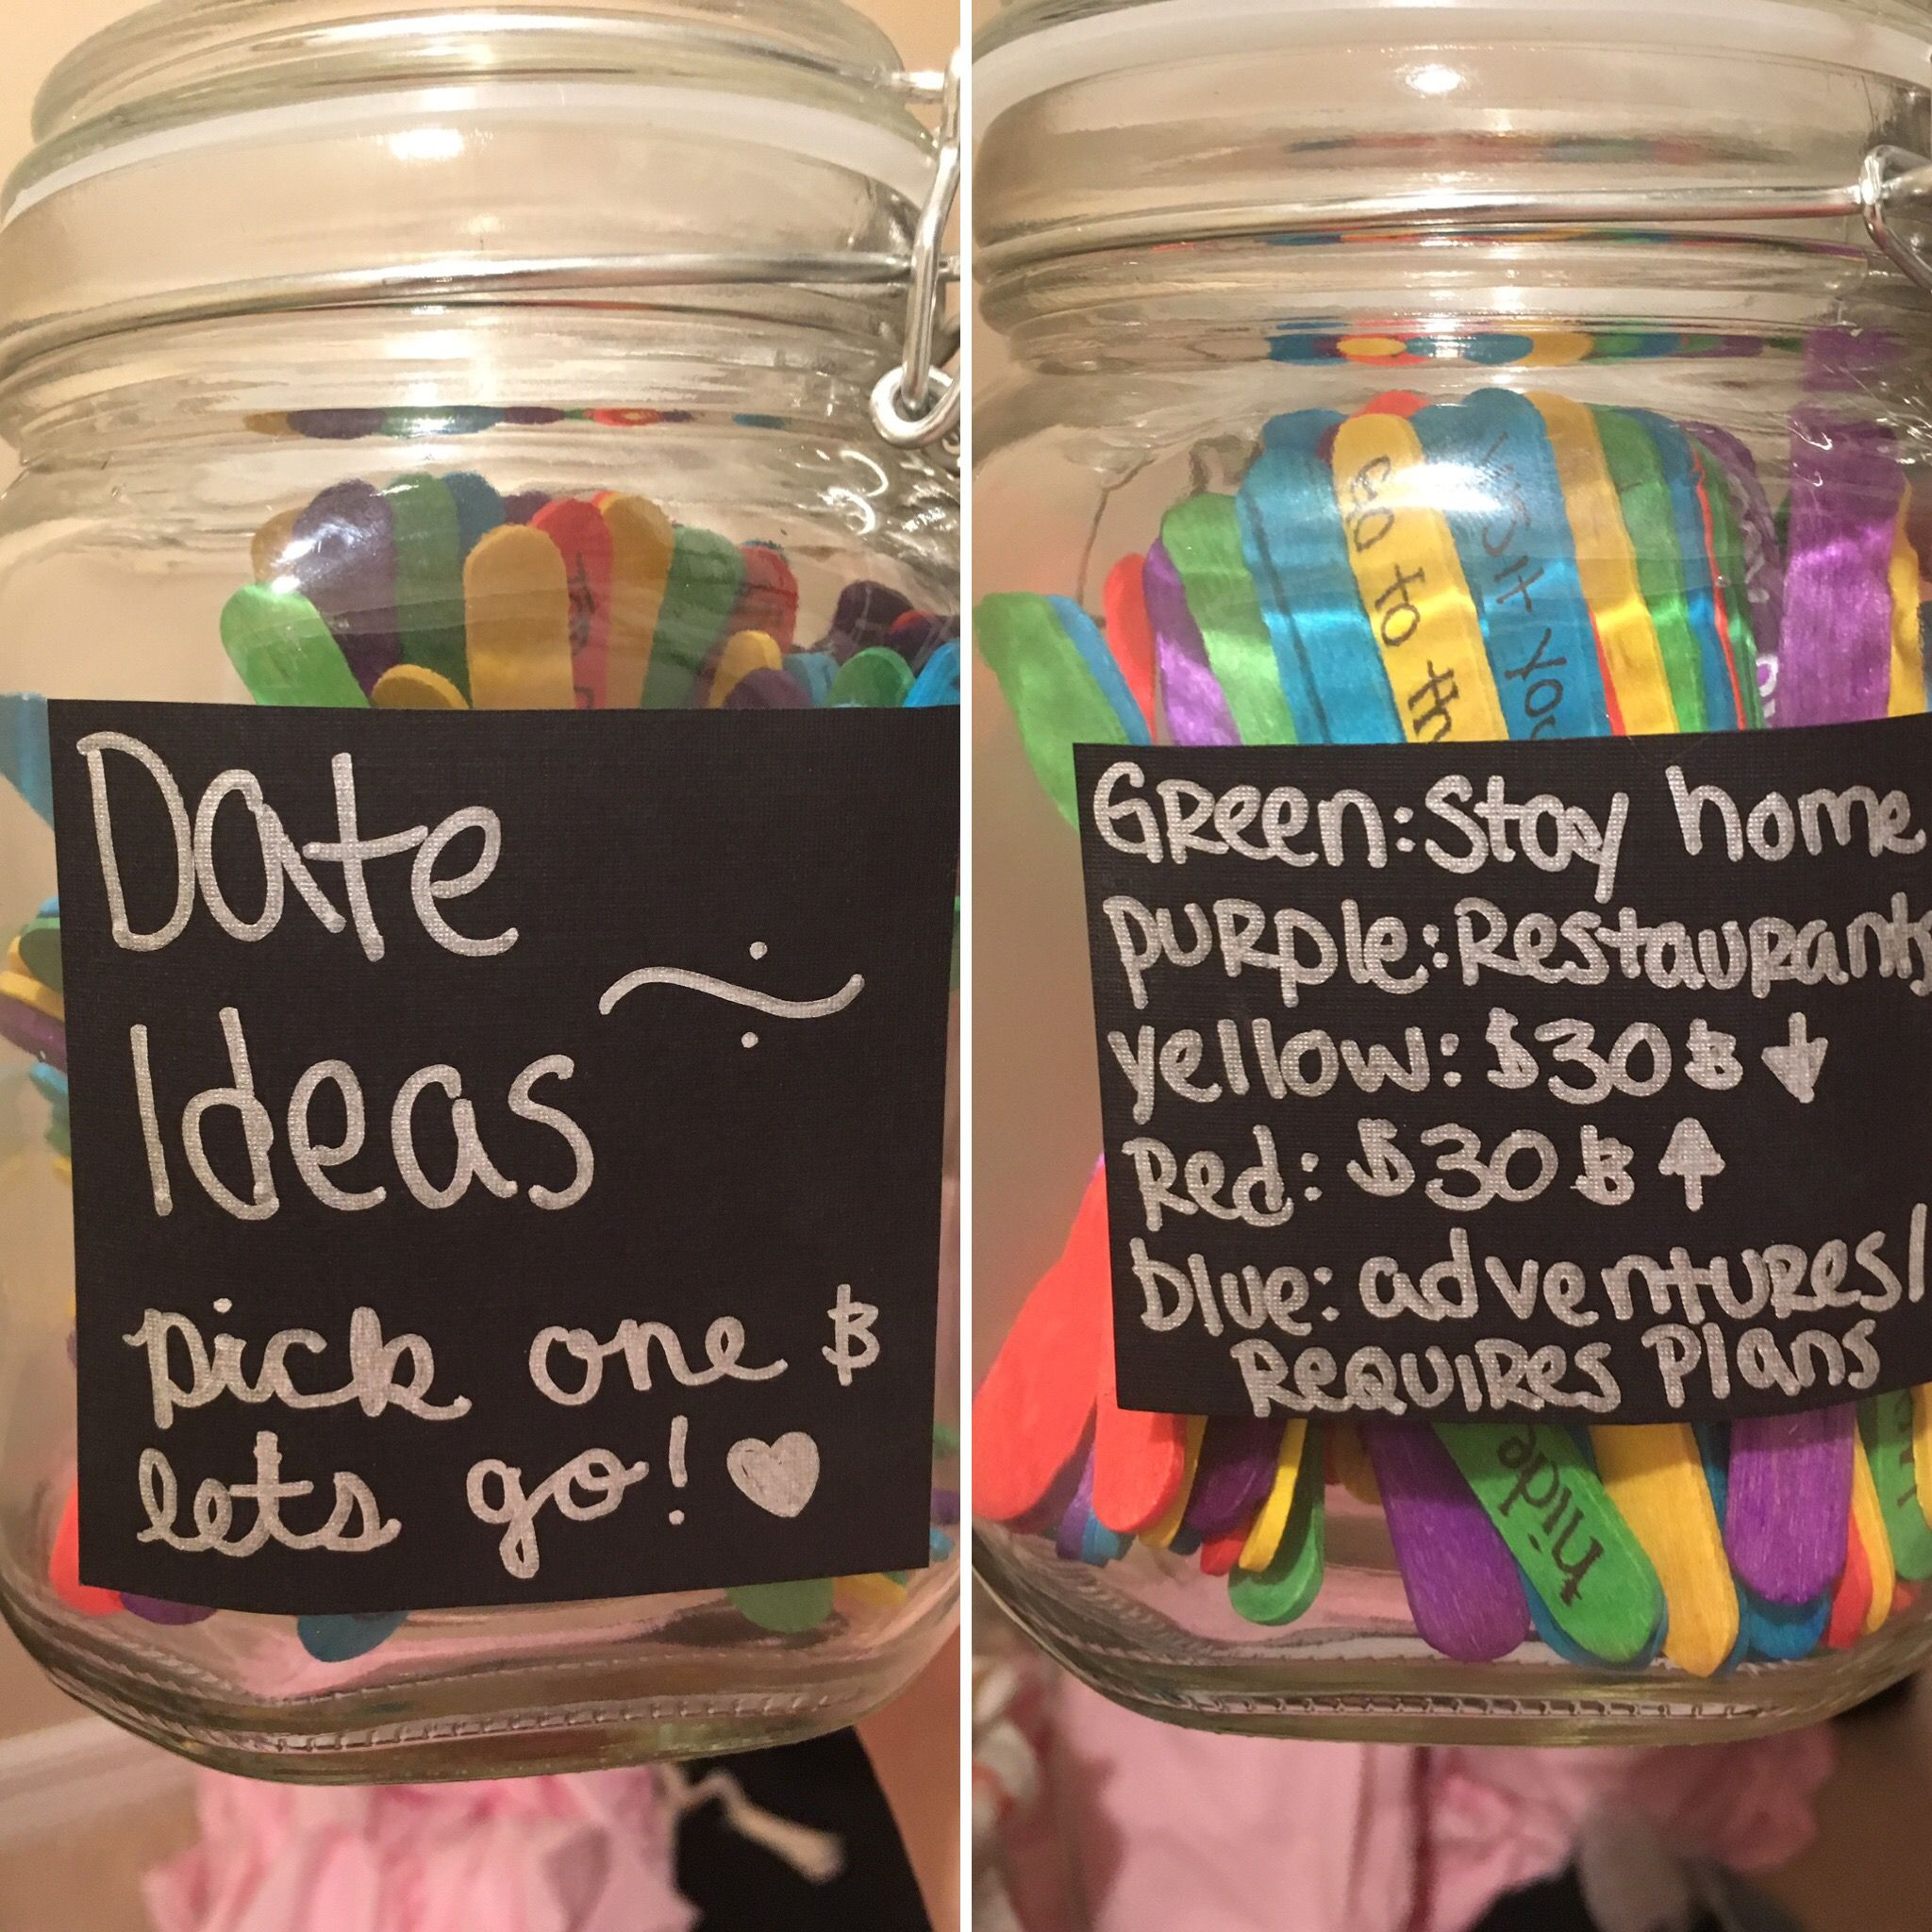 125 Colored Popsicle Sticks 5 Mason Jar 4 100 Date Ideas Boyfrie Diy Valentine Gifts For Boyfriend Cute Boyfriend Gifts Romantic Boyfriend Birthday Ideas